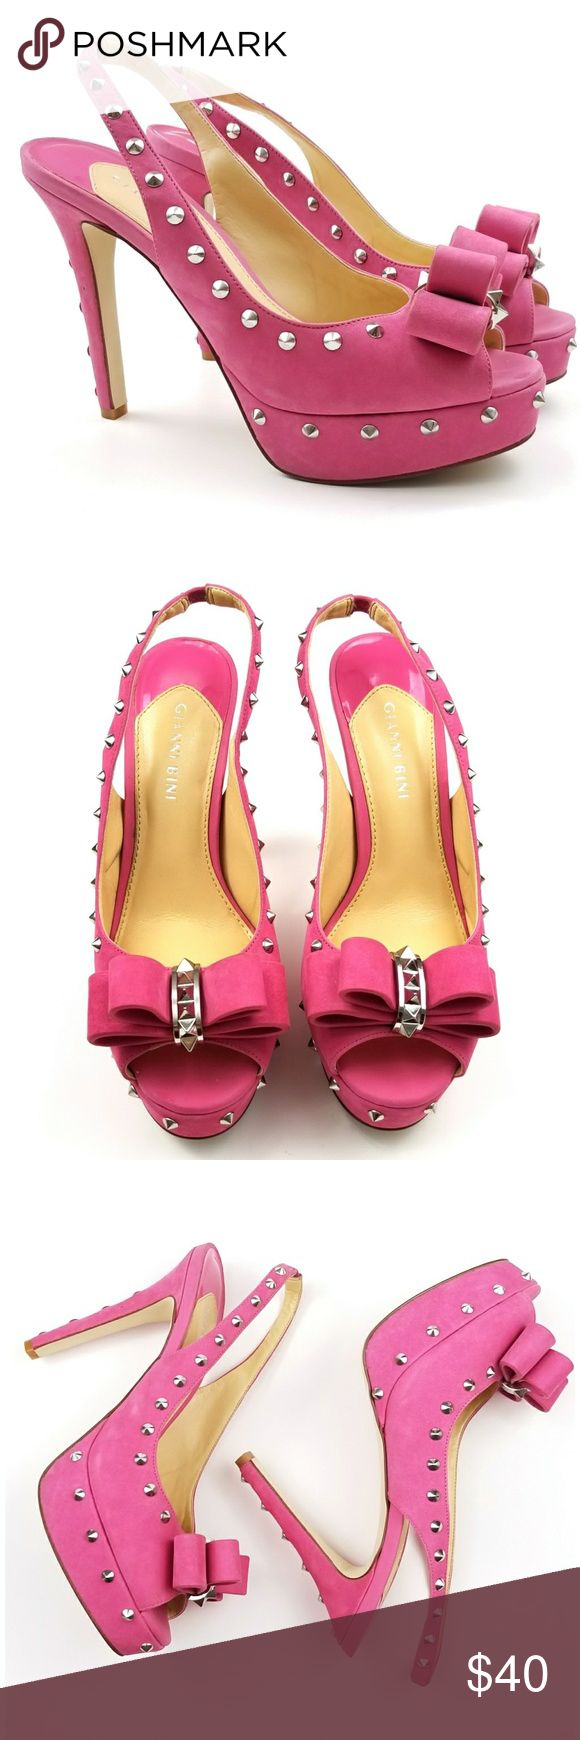 Gianni Bini Pink Studded Platfrom Gianni Bini, pink suede, studded, peep toe, platform, excellent condition, size 8.5. Gianni Bini Shoes Platforms